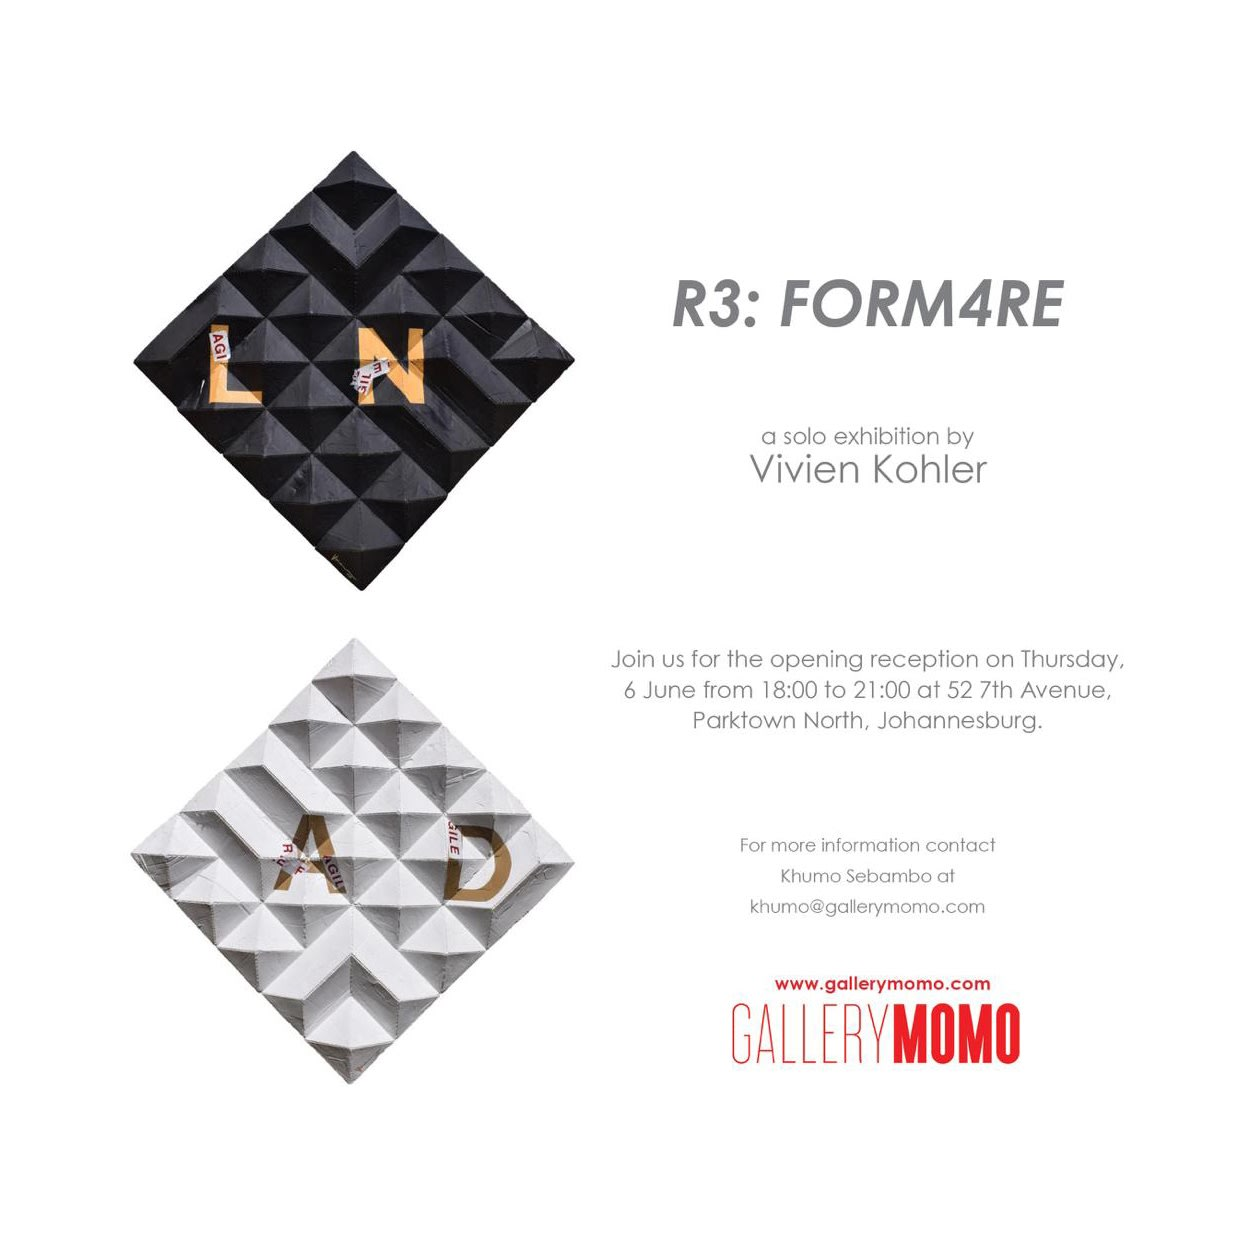 'r3: FORM4re' Solo Exhibition by Vivien Kohler at Gallery MOMO